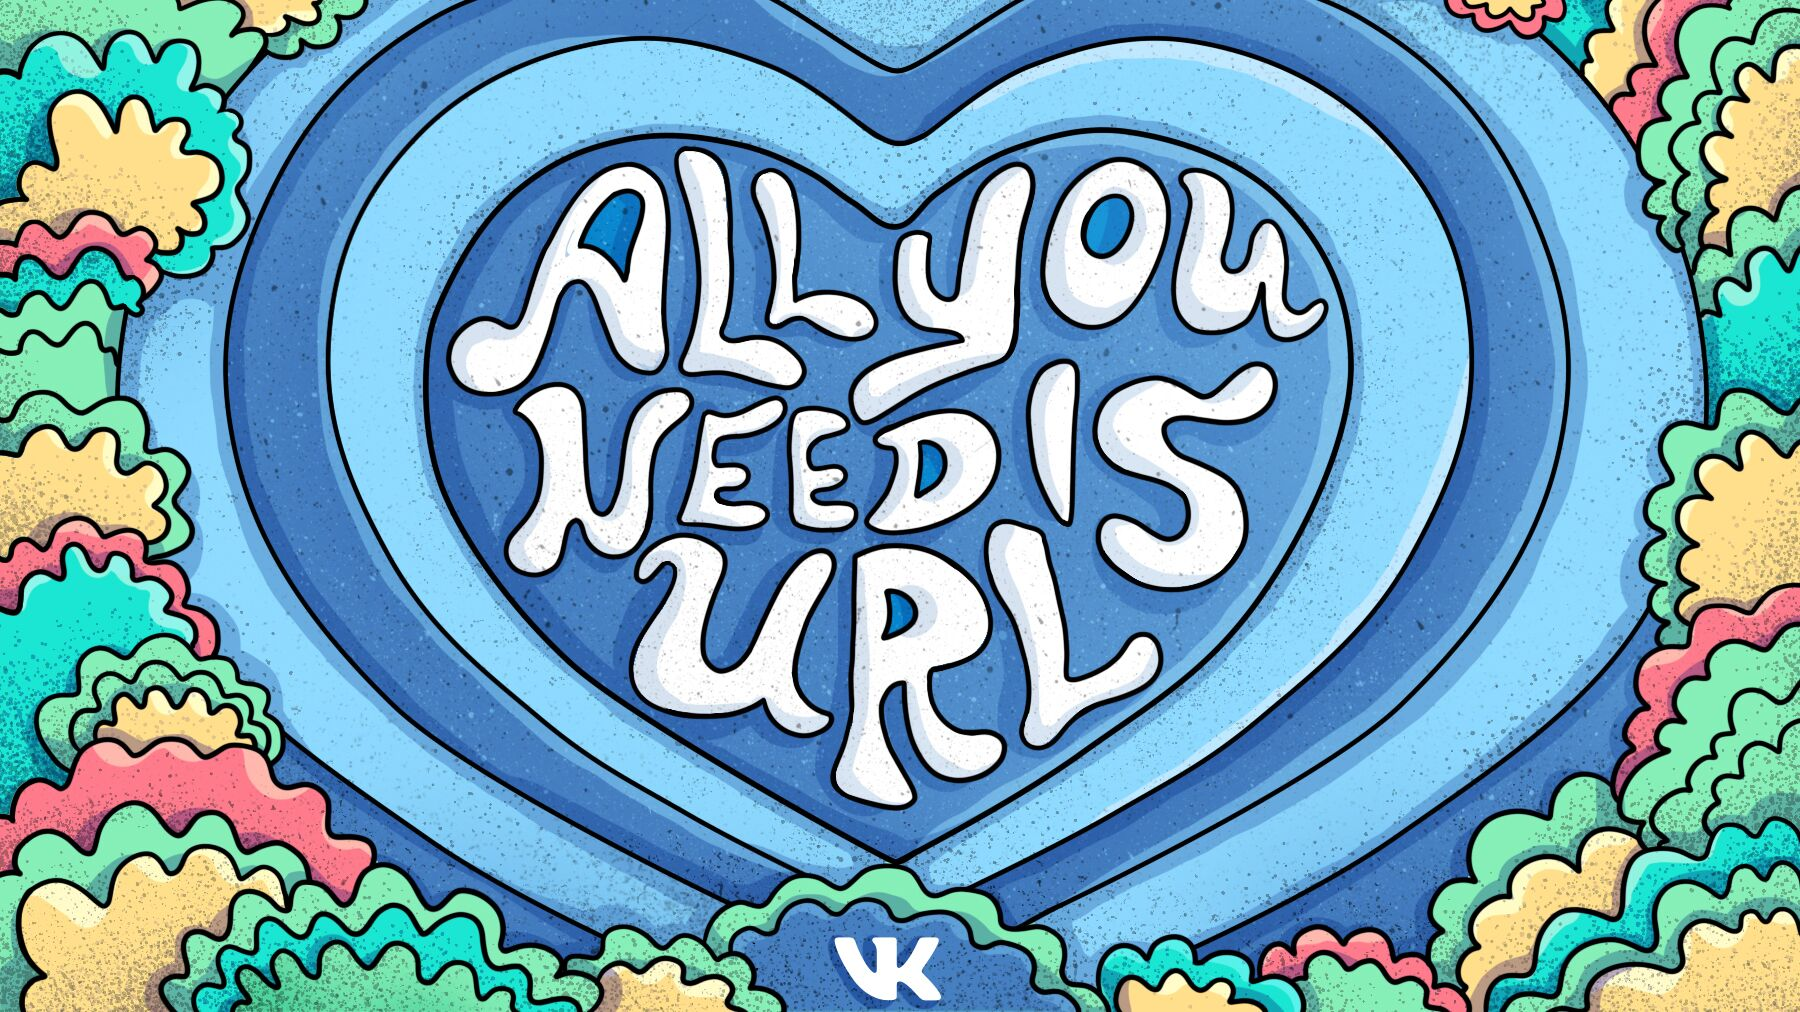 All you need is URL